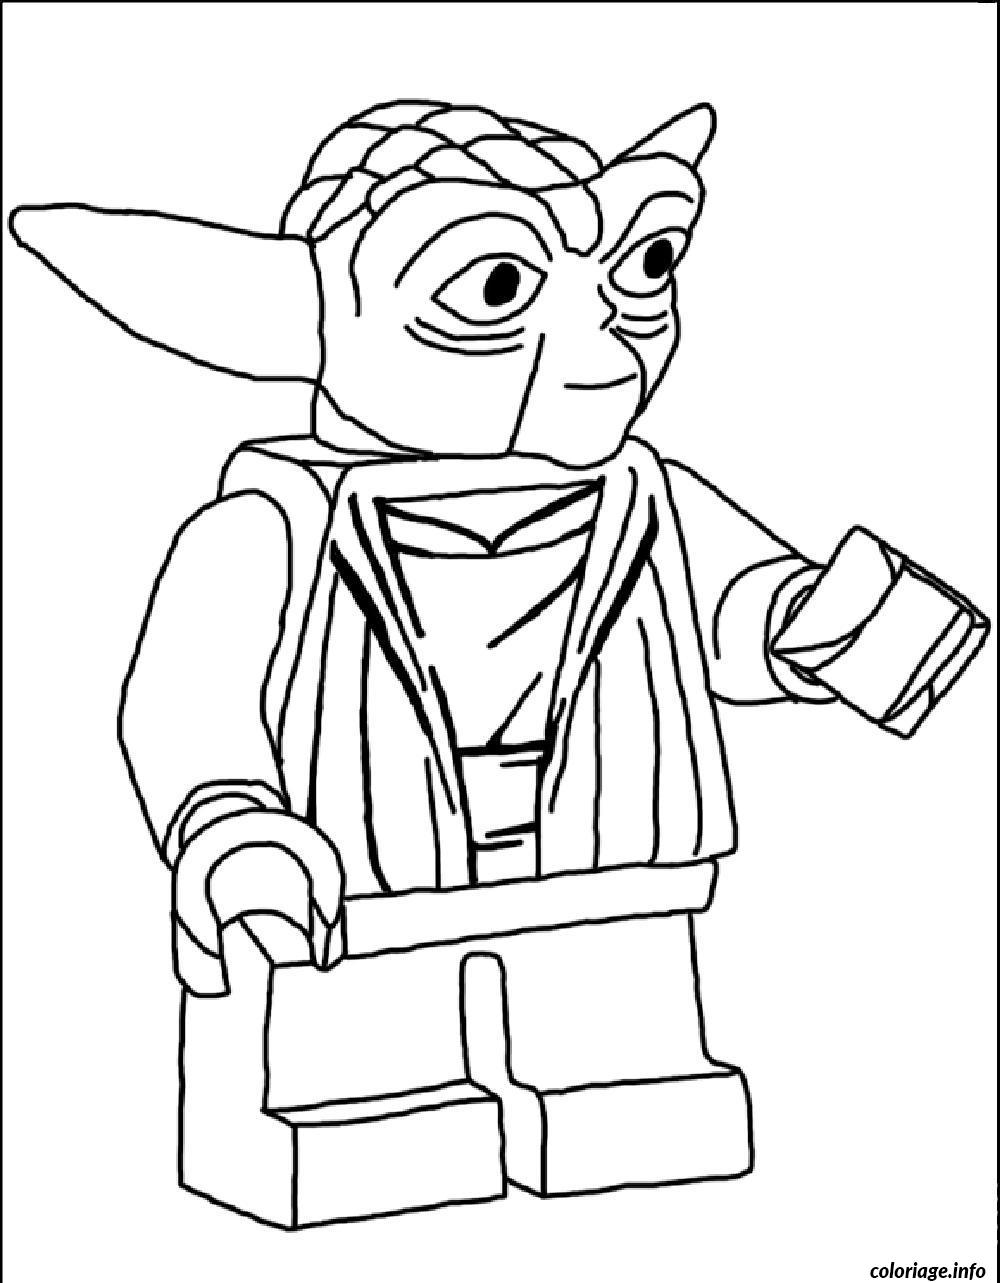 Coloriage starwars lego 149 - Star wars gratuit ...